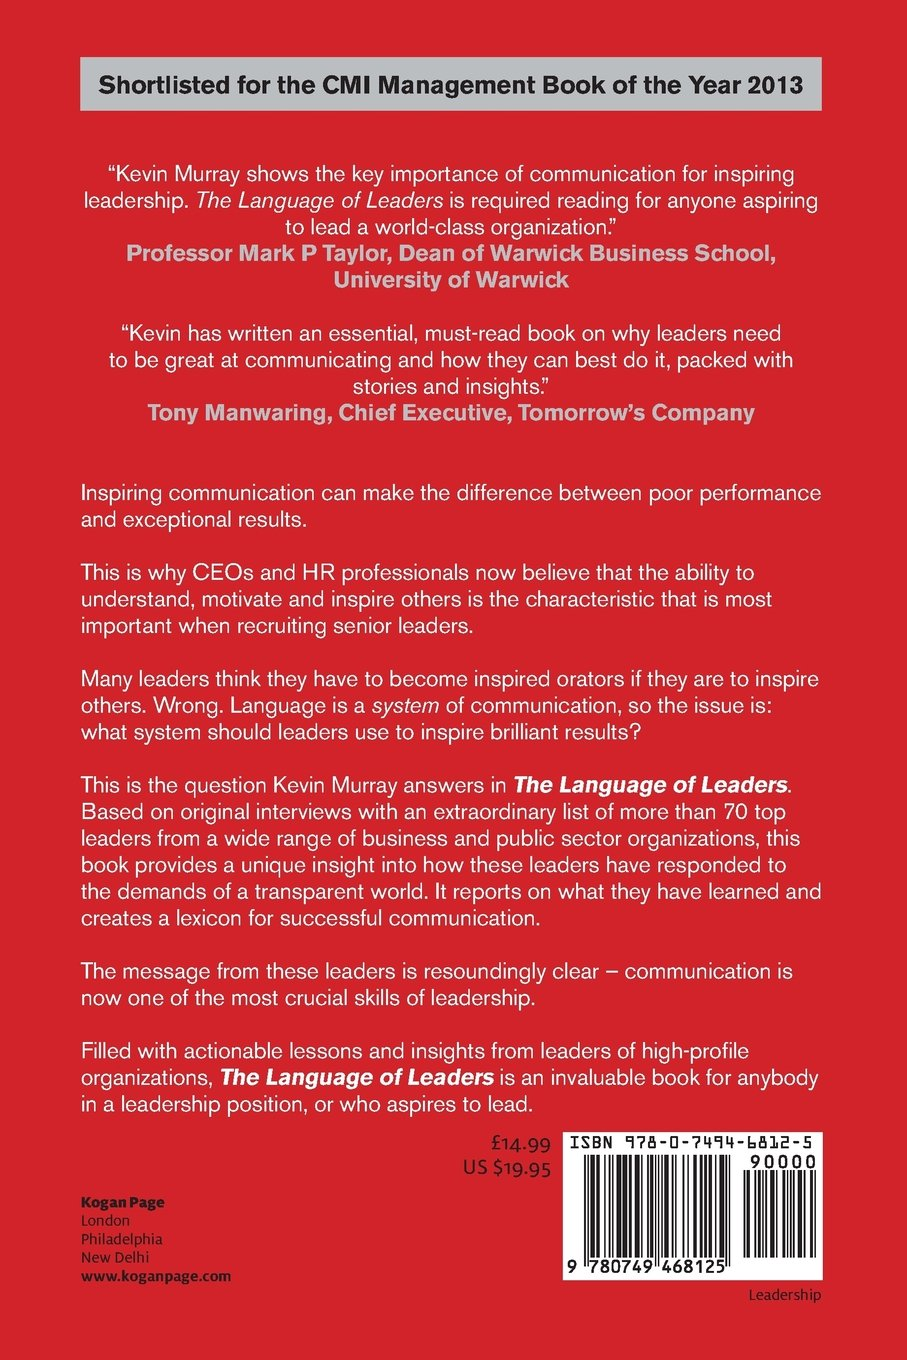 The Language of Leaders: How Top CEOs Communicate to Inspire, Influence and Achieve Results by Kogan Page